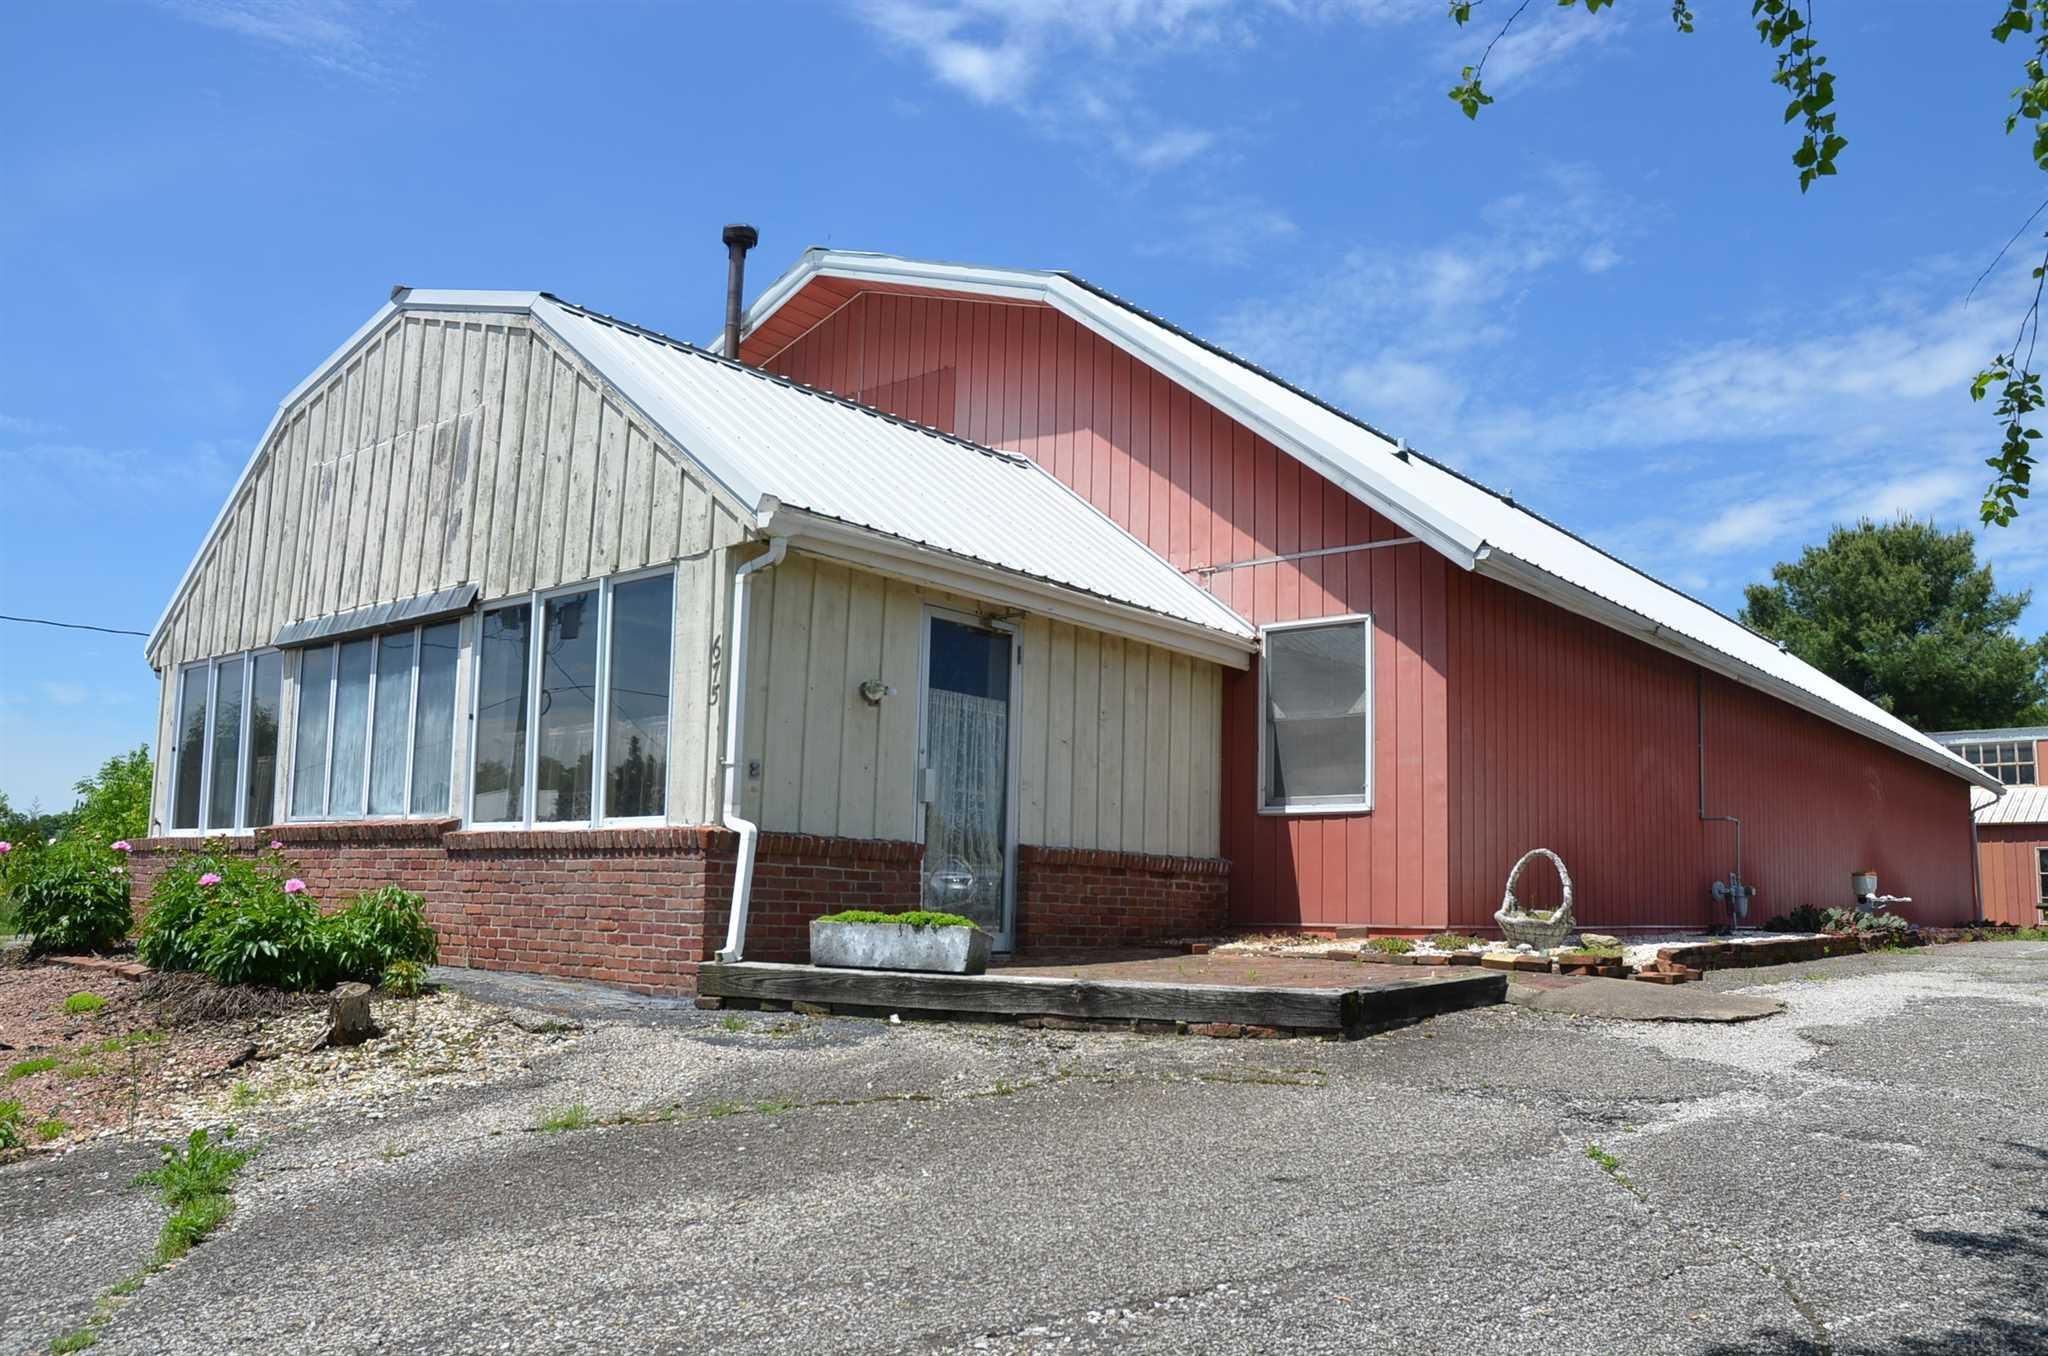 UNIQUE OPPORTUNITY!  This property is located along a blacktopped county road between Highways #231 and #162 on approximately 1.82 acres, and currently features one bedroom, 1 1/2 baths, large living/dining area and a small kitchen area.  This property was formerly used as a meat processing operation with large areas and three extra-large walk-in coolers that have a potential of being converted into bedrooms and additional living quarters and/or a business.  Includes an attached garage plus an additional detached garage/shop building.  The owners have passed away and the heirs want to sell...an opportunity waiting to happen!